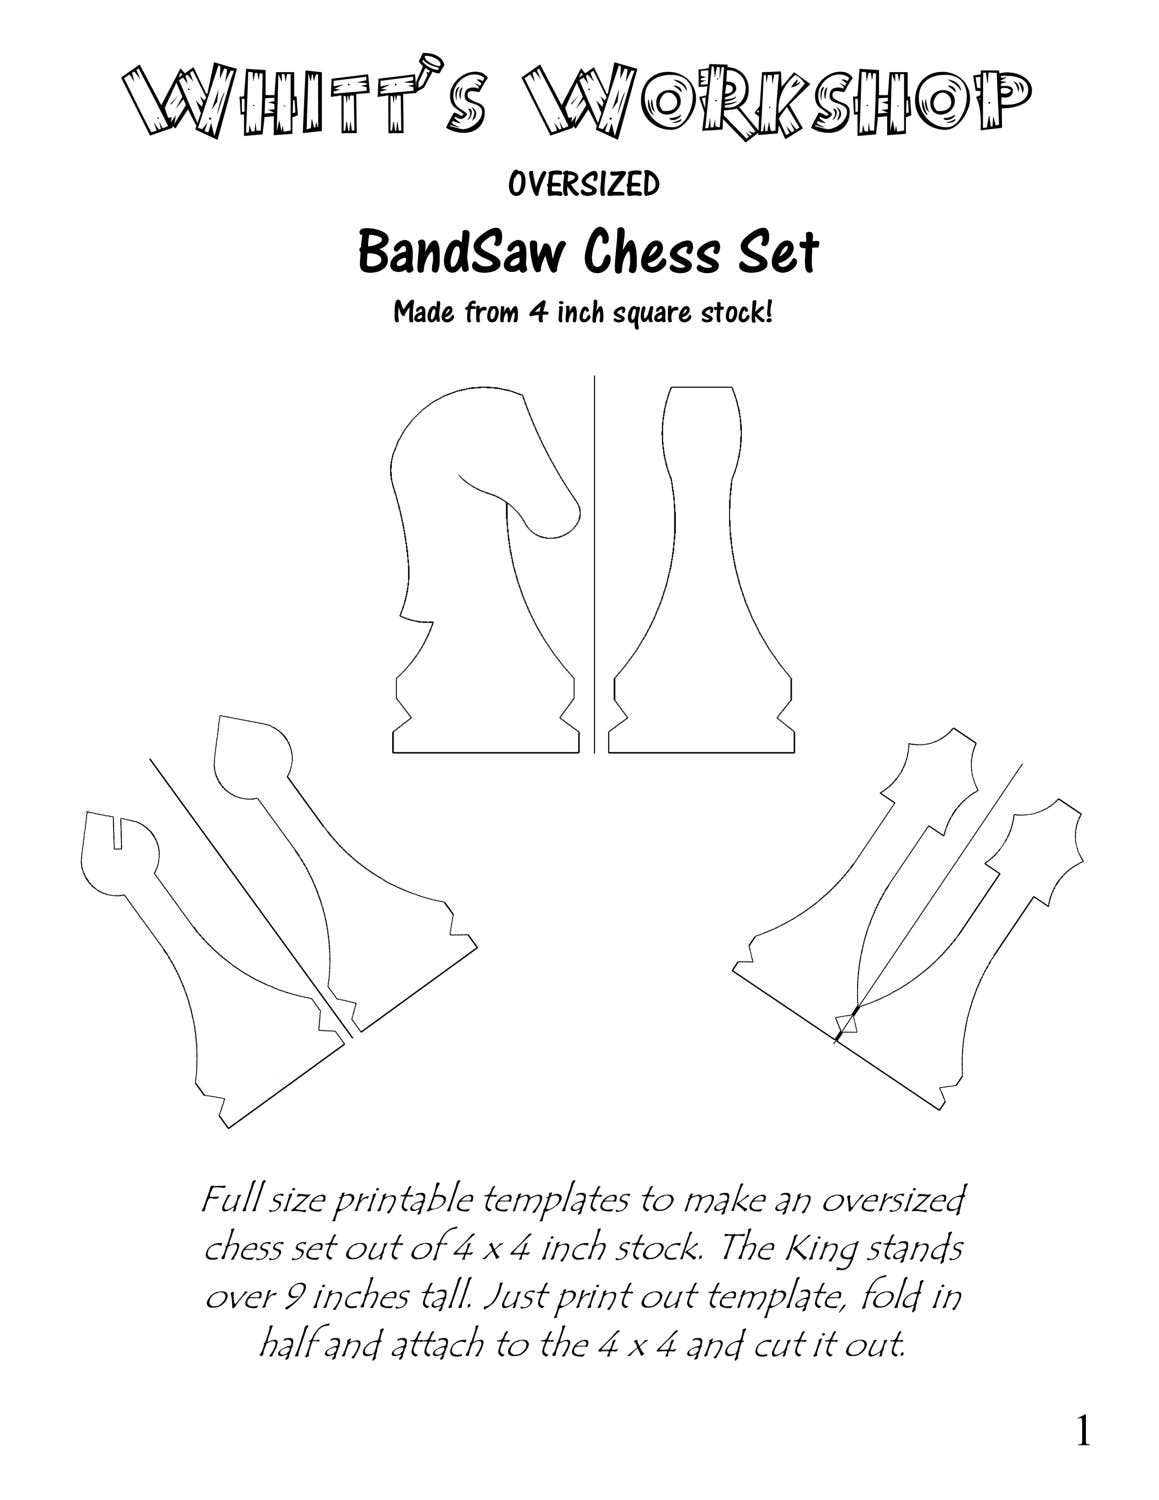 Over sized band saw chess set wood plans pdf file this is a digital file malvernweather Gallery